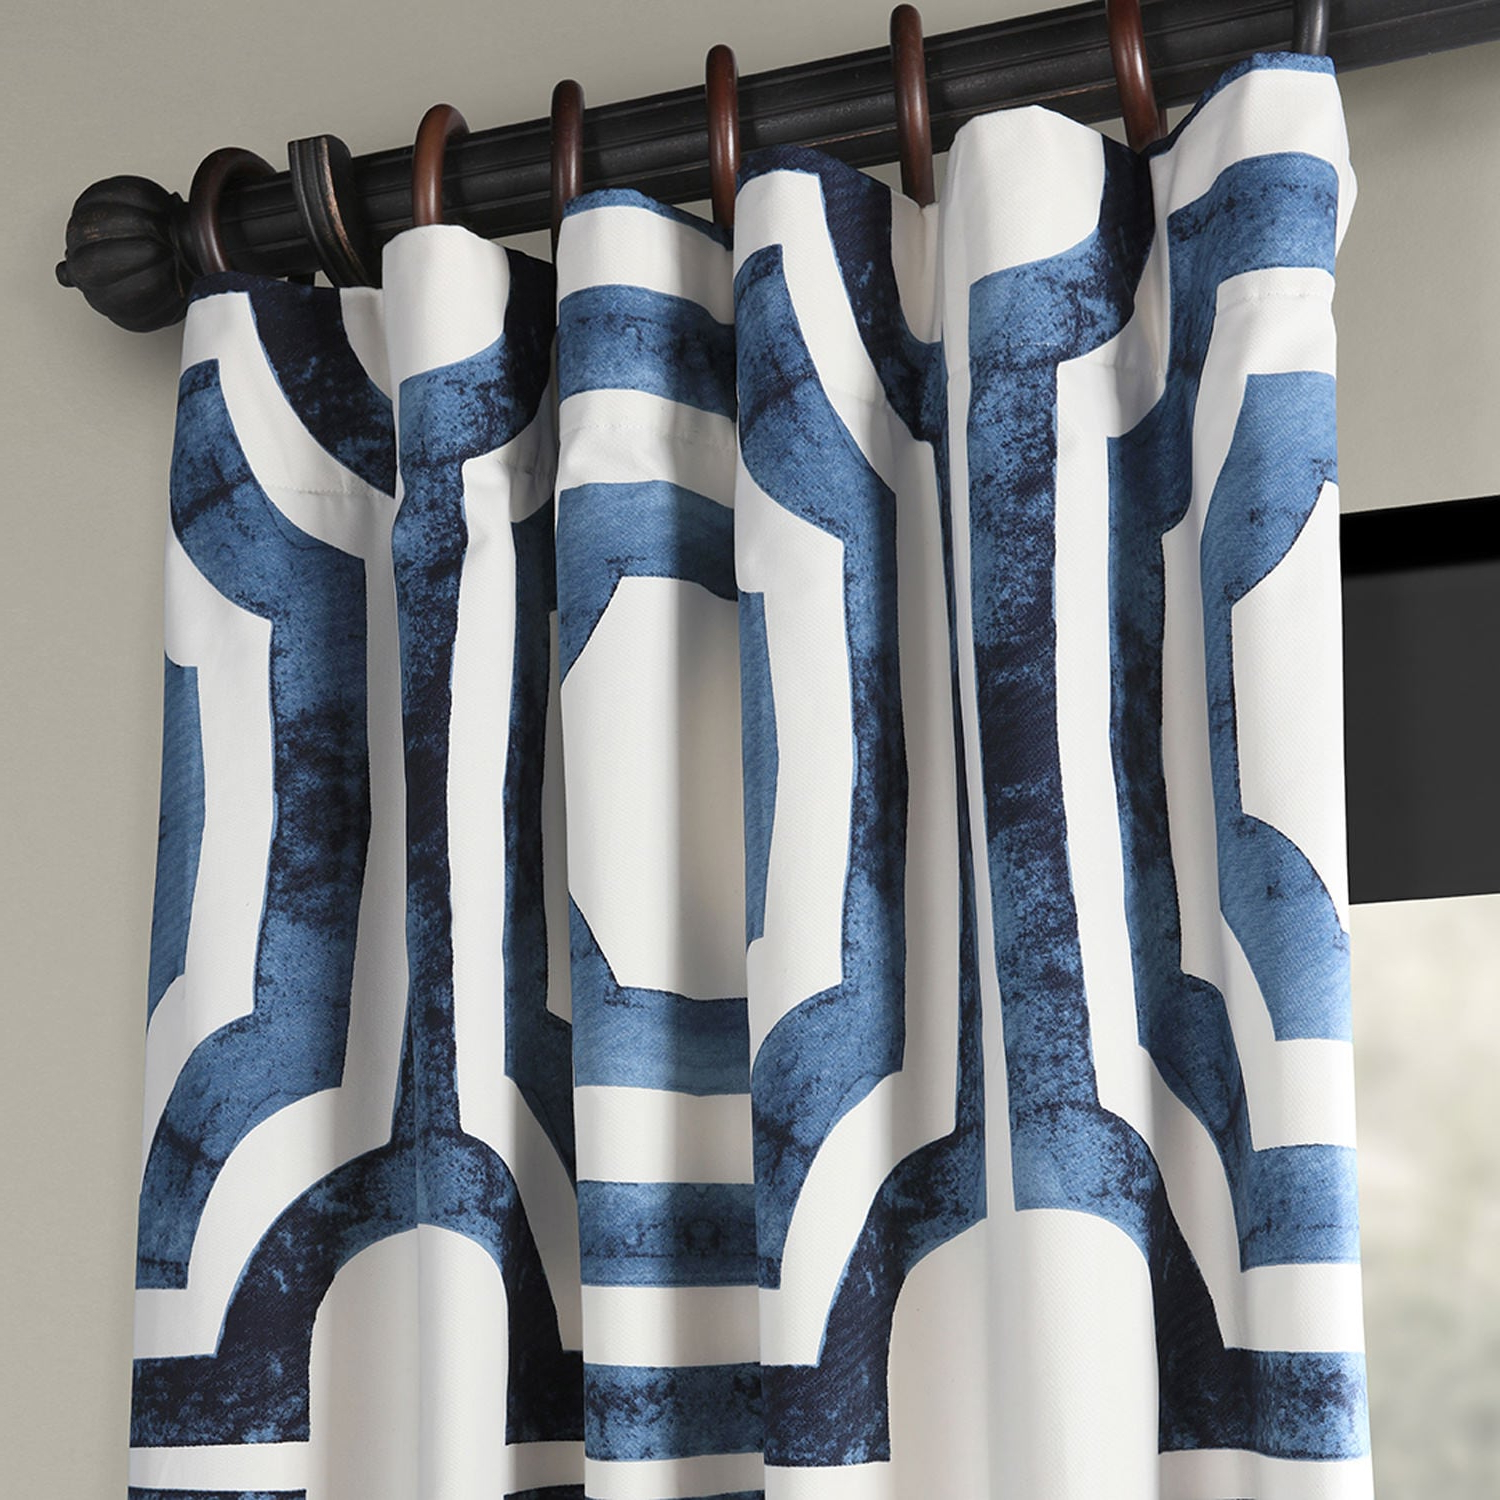 Mecca Printed Cotton Single Curtain Panels Inside Latest Mecca Blue Printed Cotton Curtain (Gallery 11 of 21)